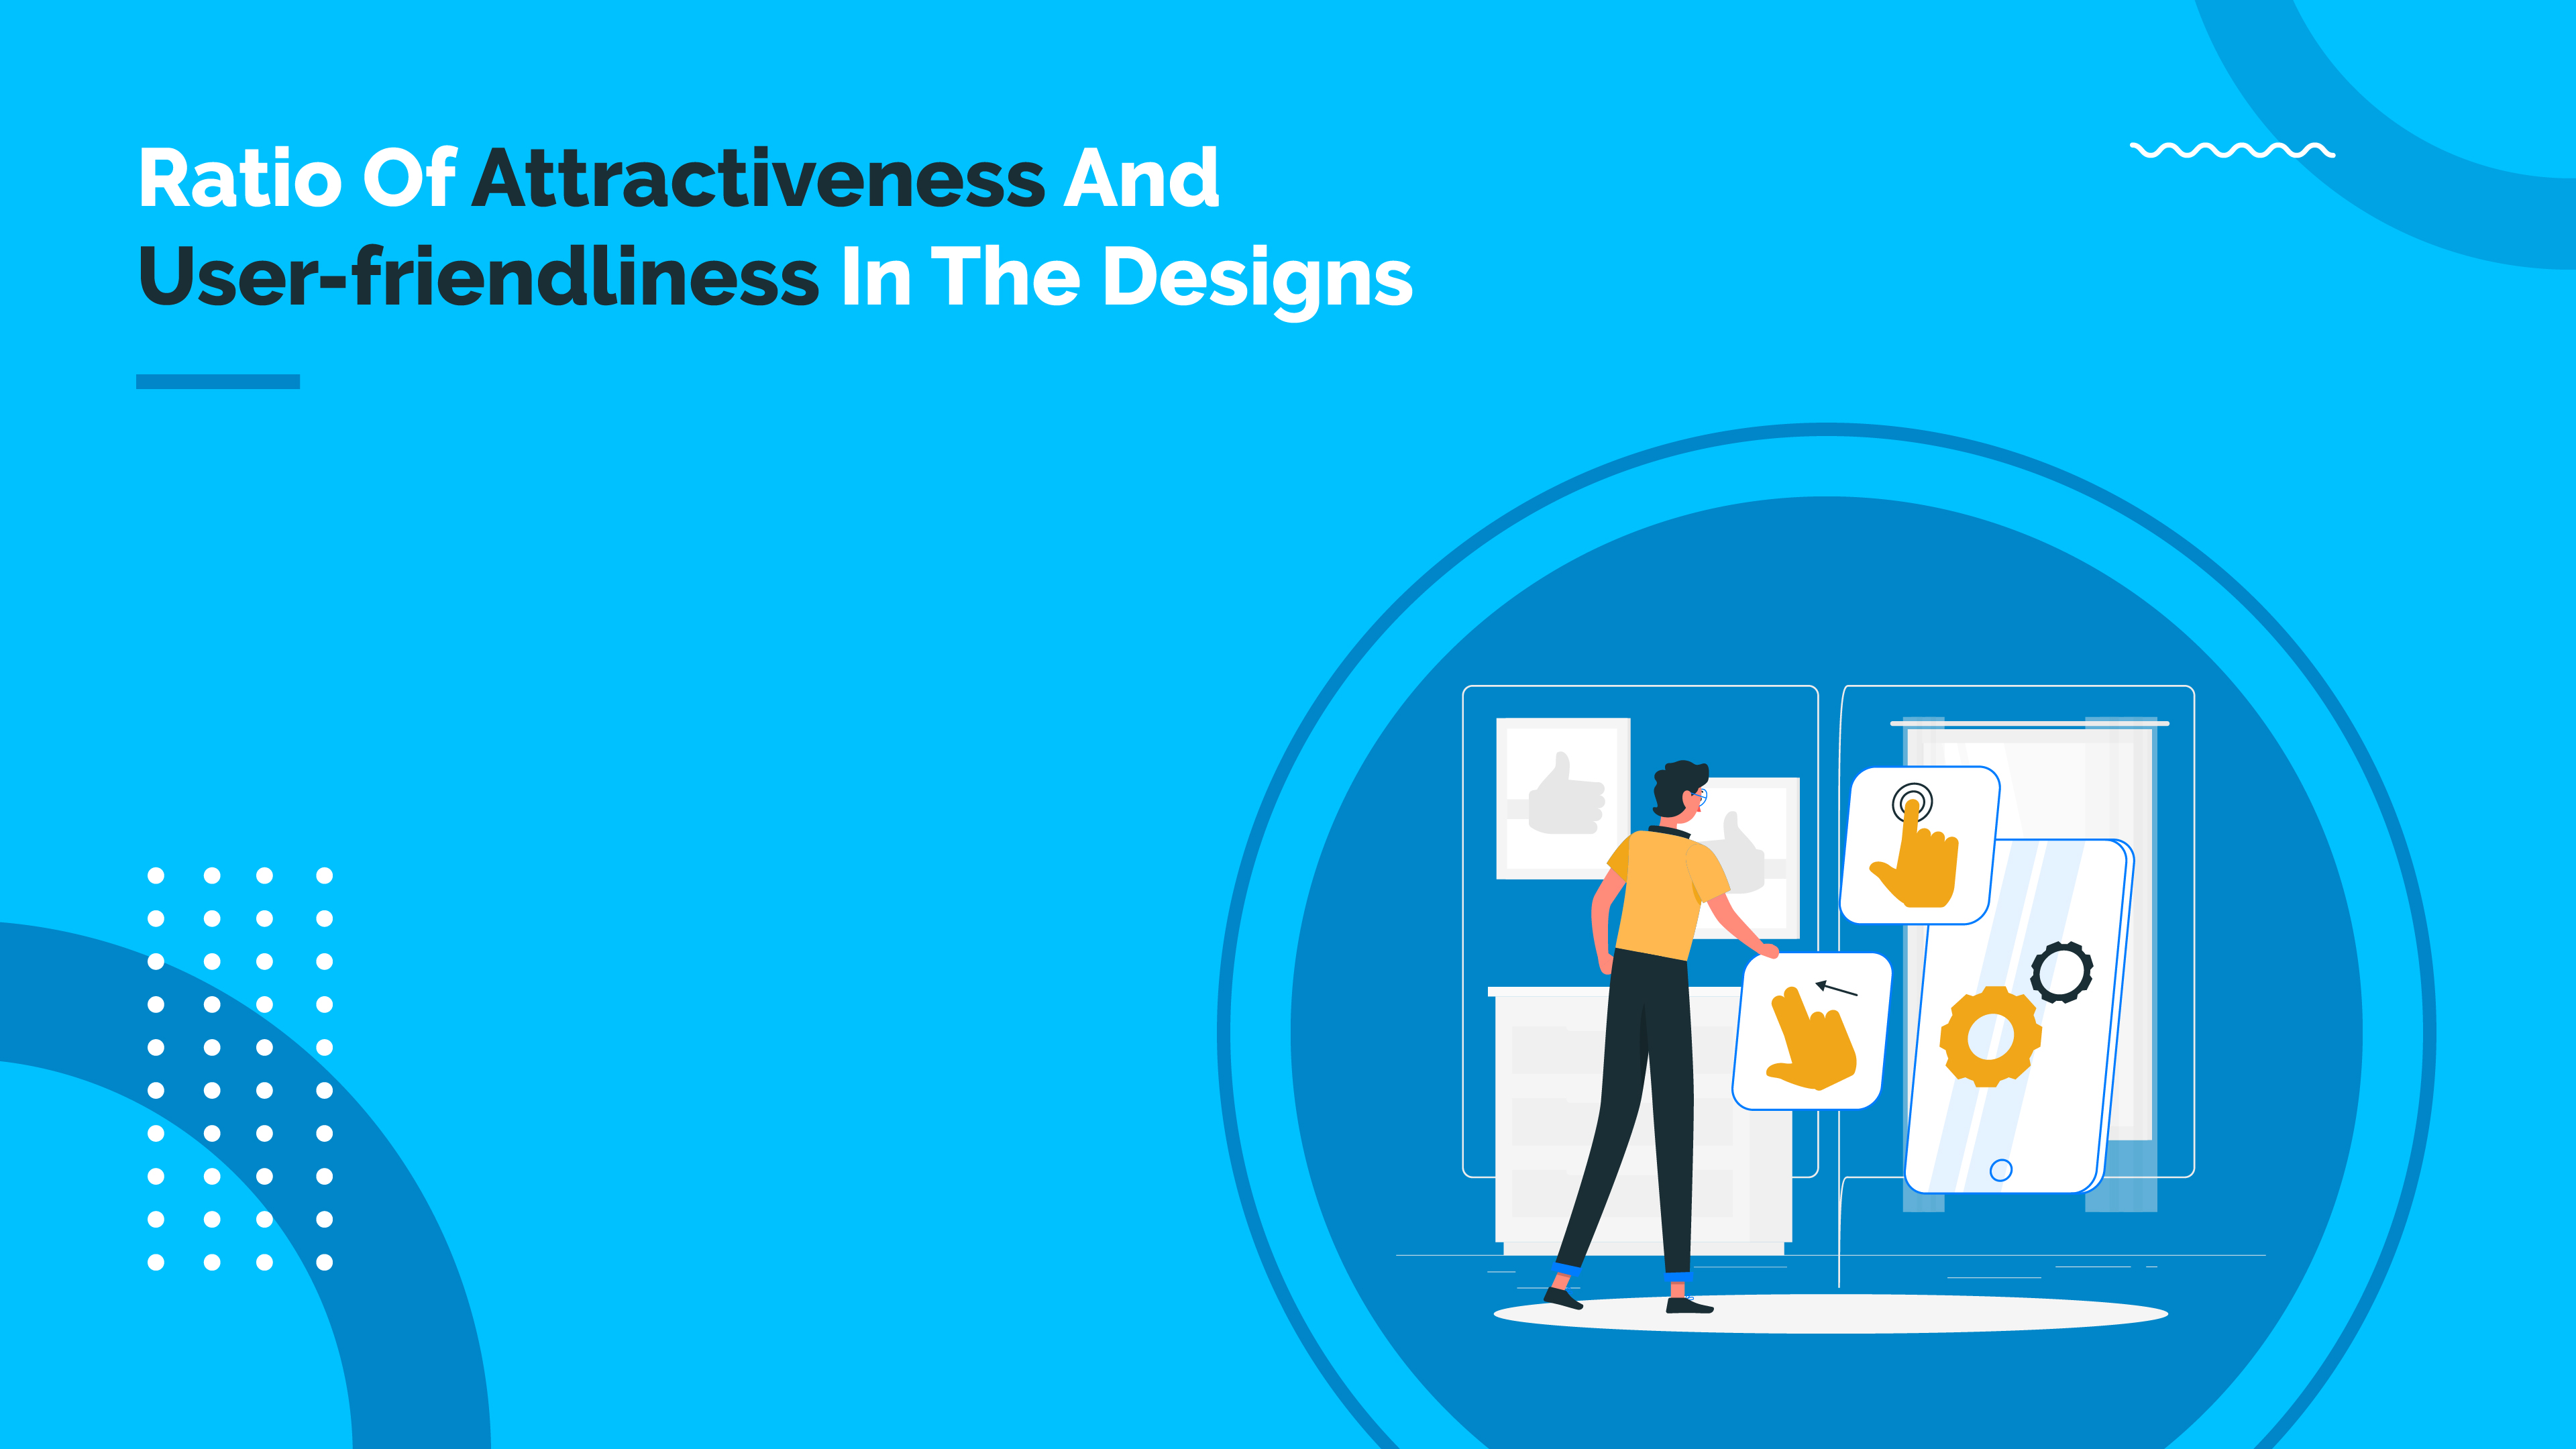 Ratio of attractiveness and user-friendliness in the designs